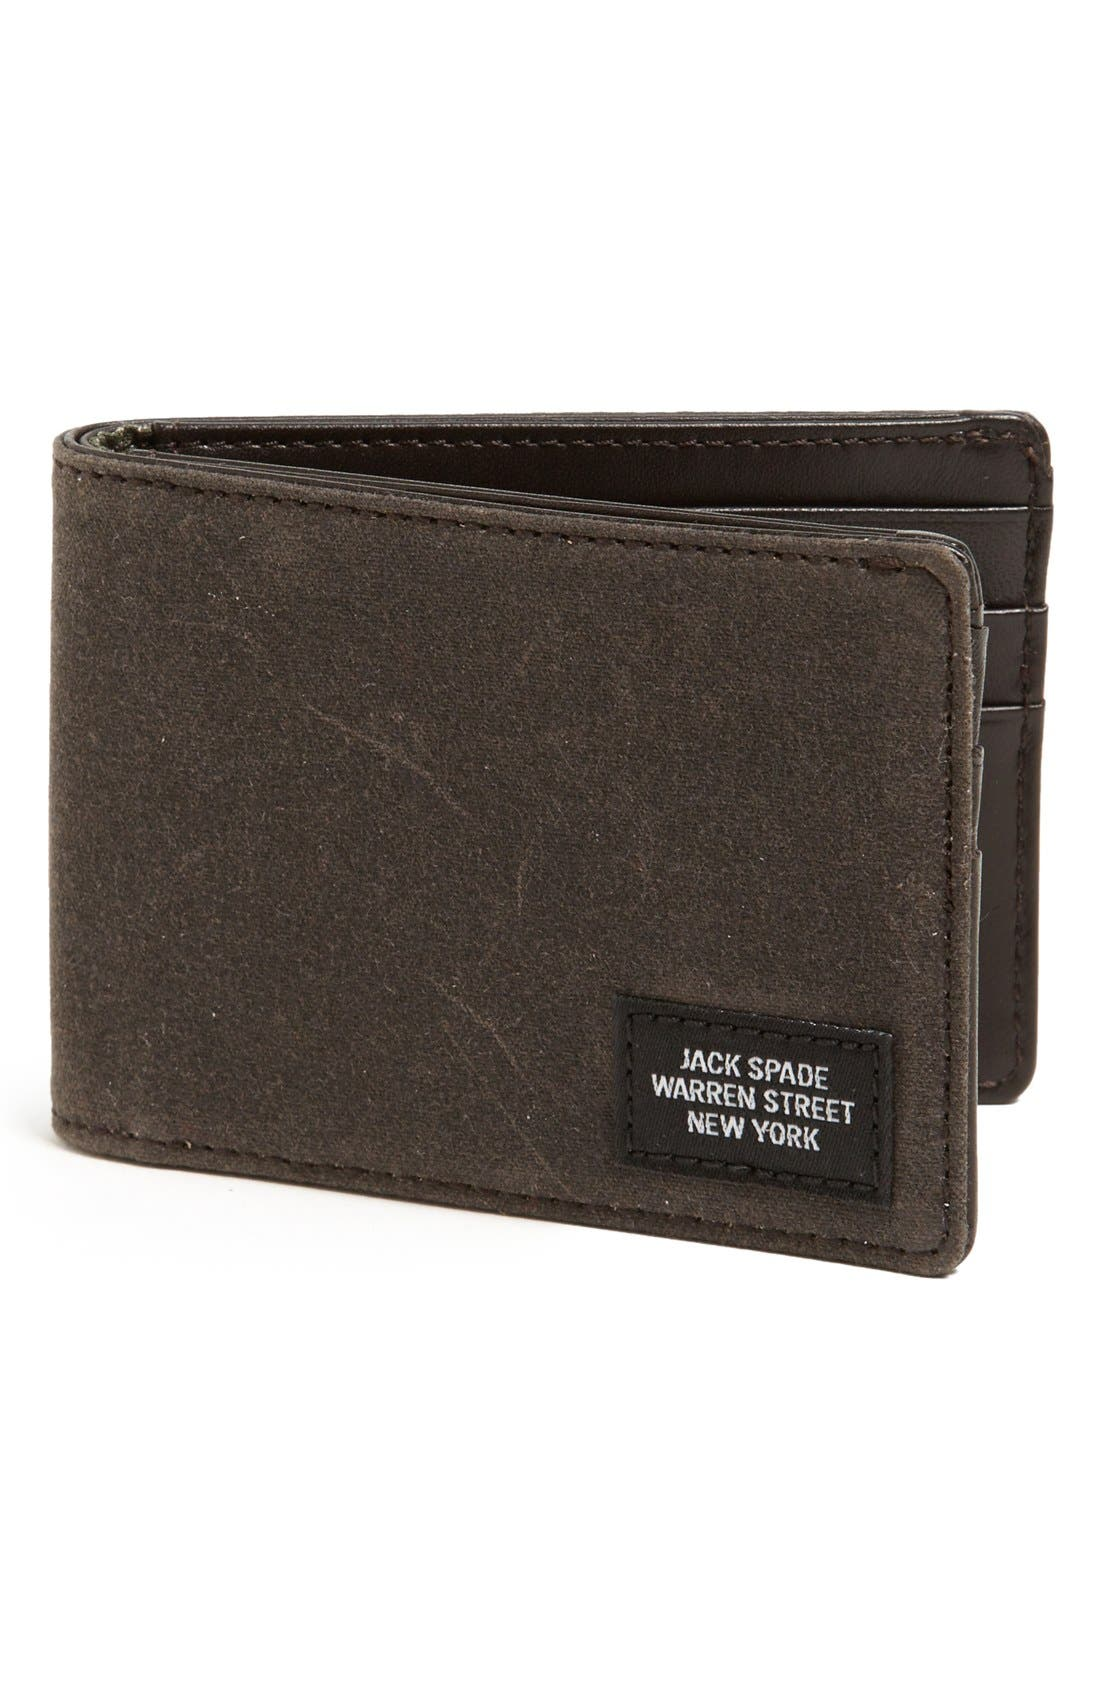 Alternate Image 1 Selected - Jack Spade 'Waxwear' Wallet